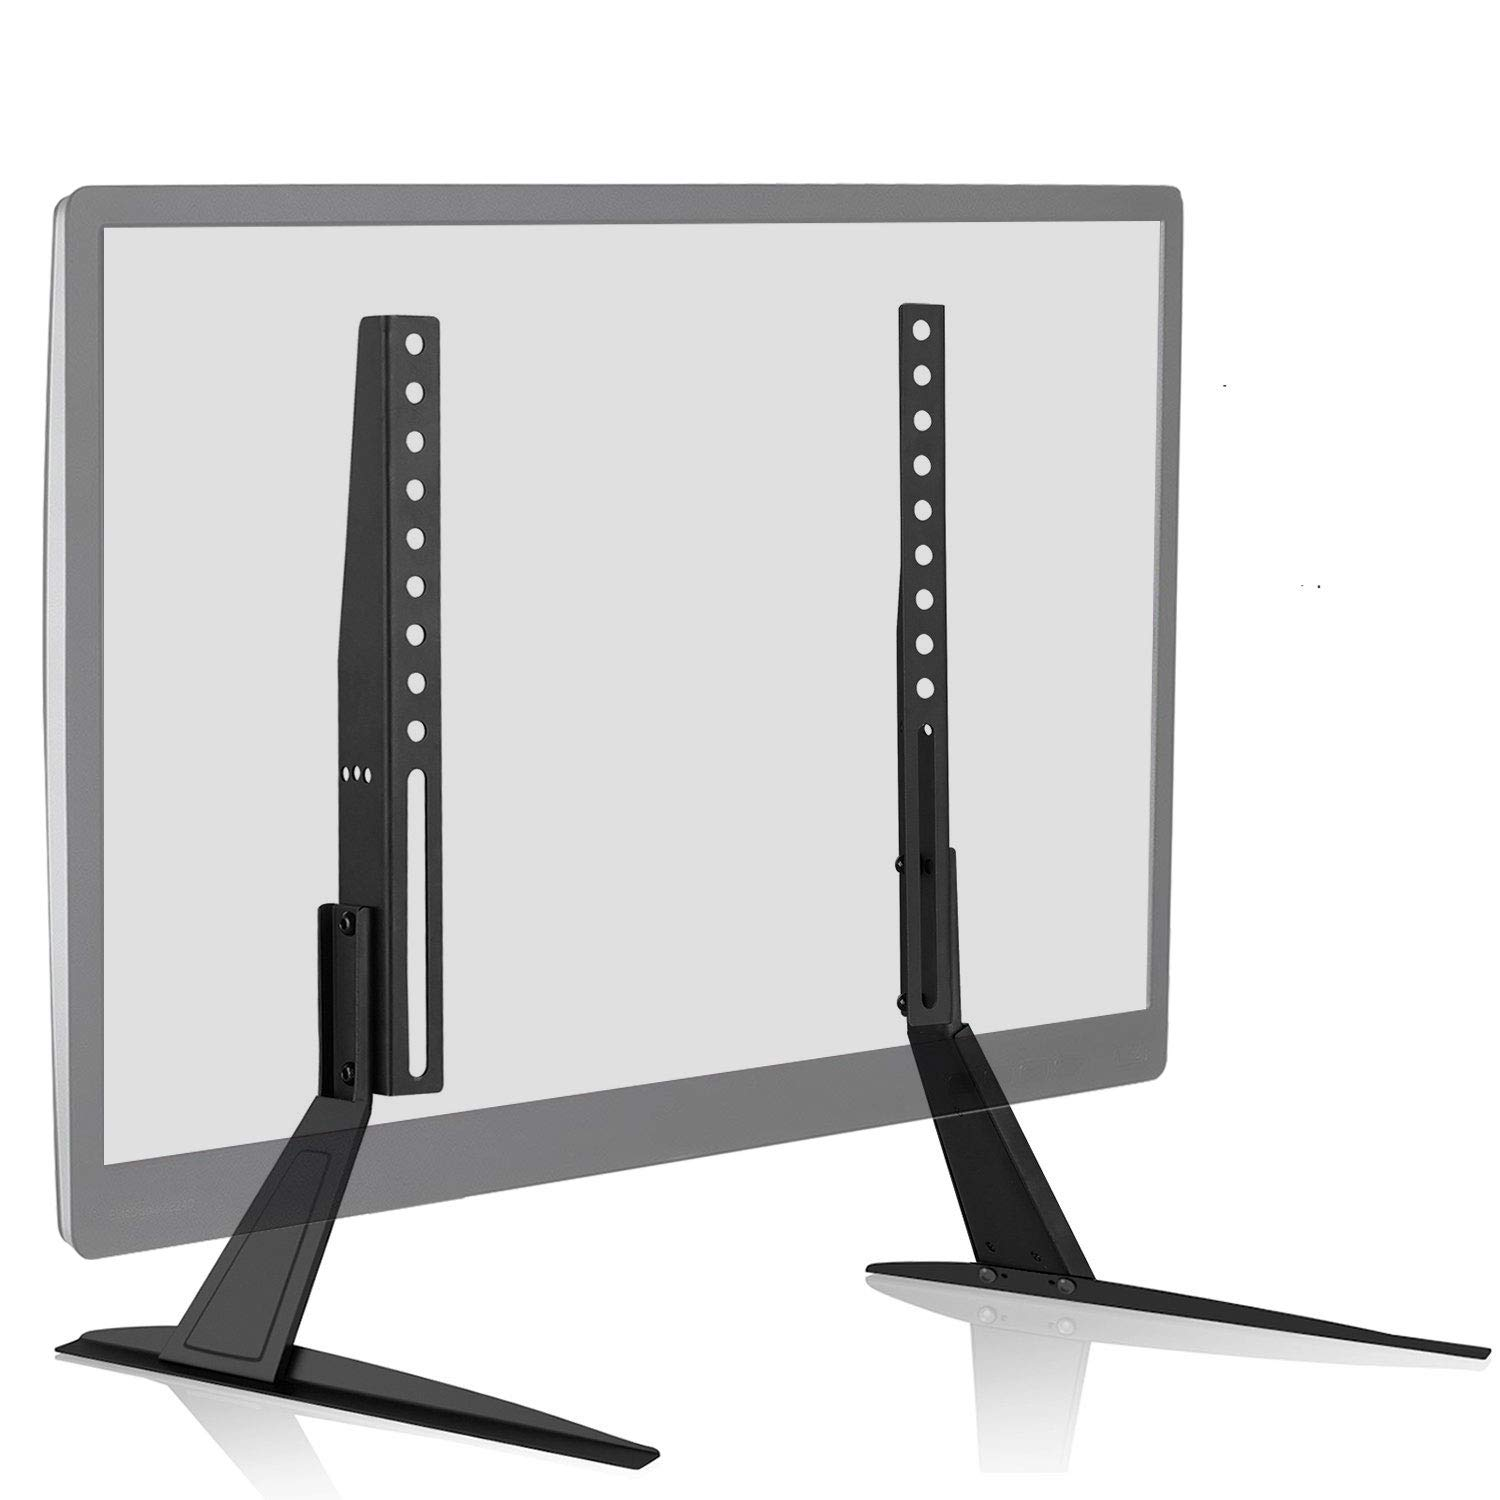 WALI Universal TV Stand Table Top for Most 23 to 42 inch LED LCD Flat Screen TV, VESA up to 200 by 400mm , Black by WALI